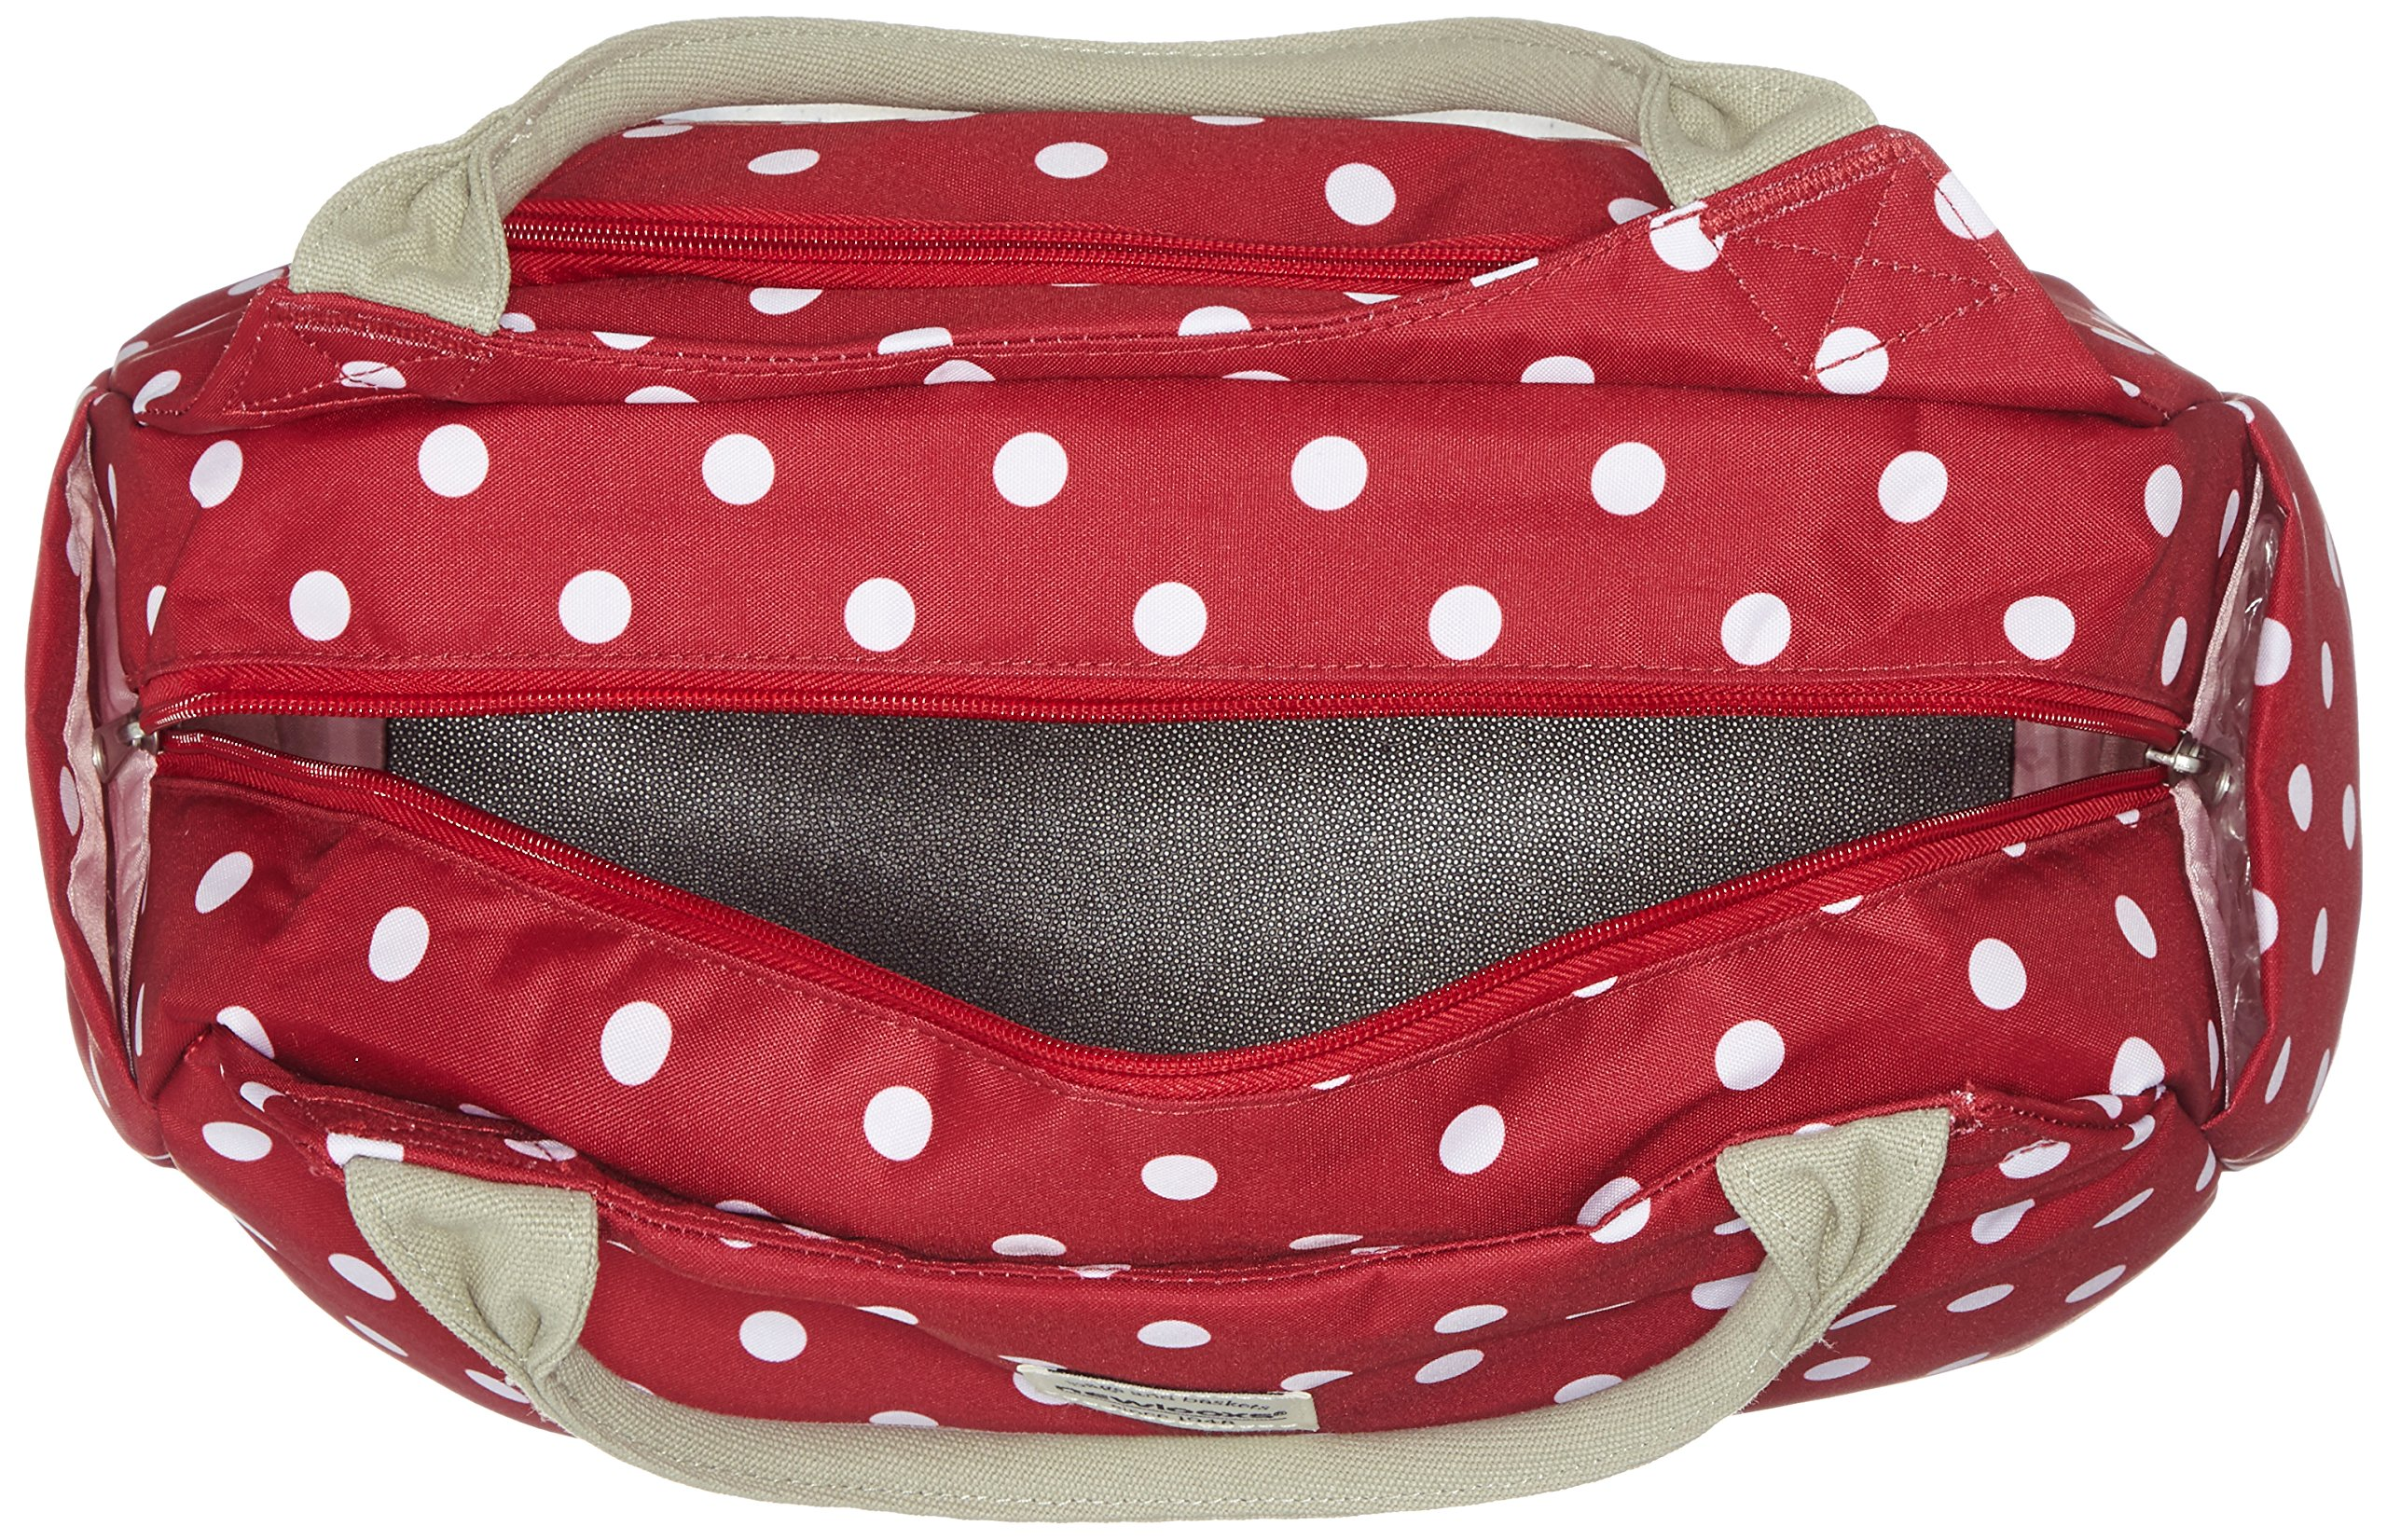 New Looxs Tosca handbag with polka dots, red [Sports] by New (Image #5)